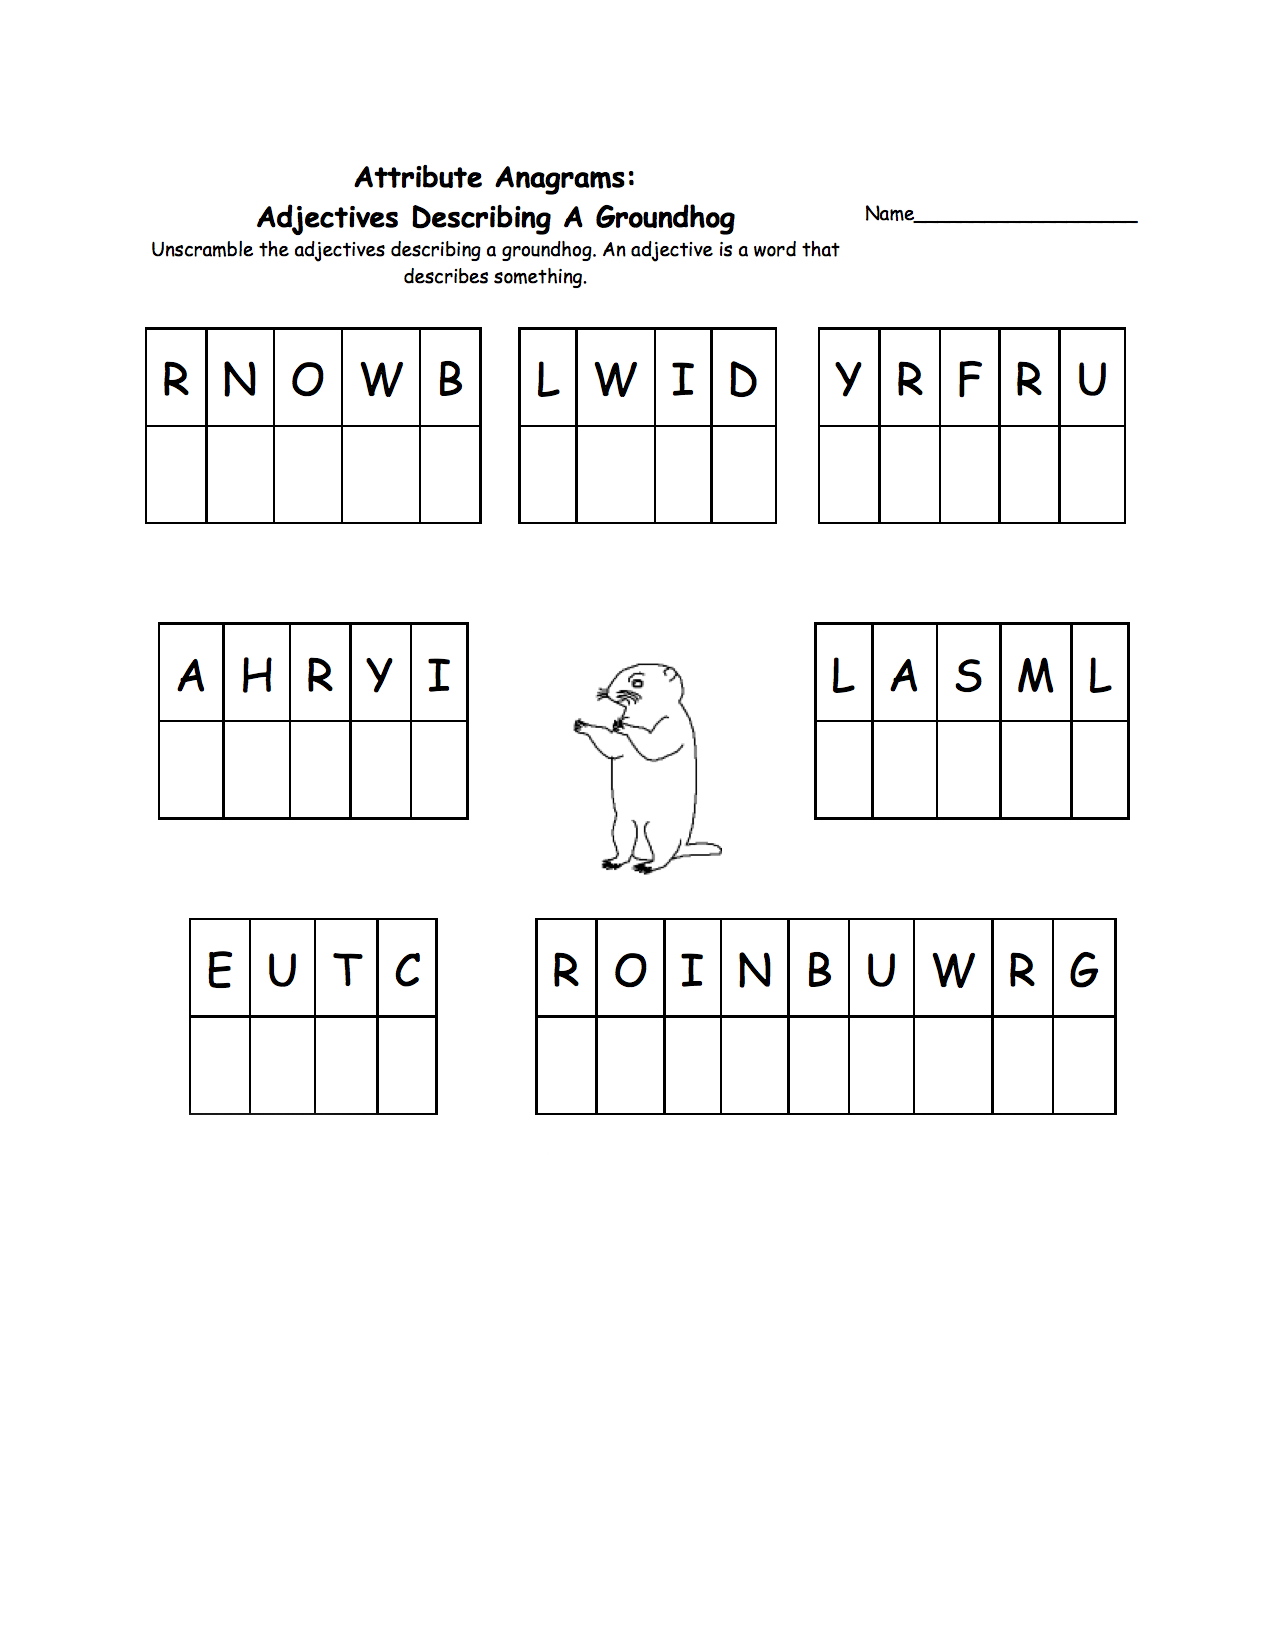 Groundhog Day Worksheets Best Coloring Pages For Kids Groundhog Day Wristband Template Printable Worksheets [ 1649 x 1275 Pixel ]